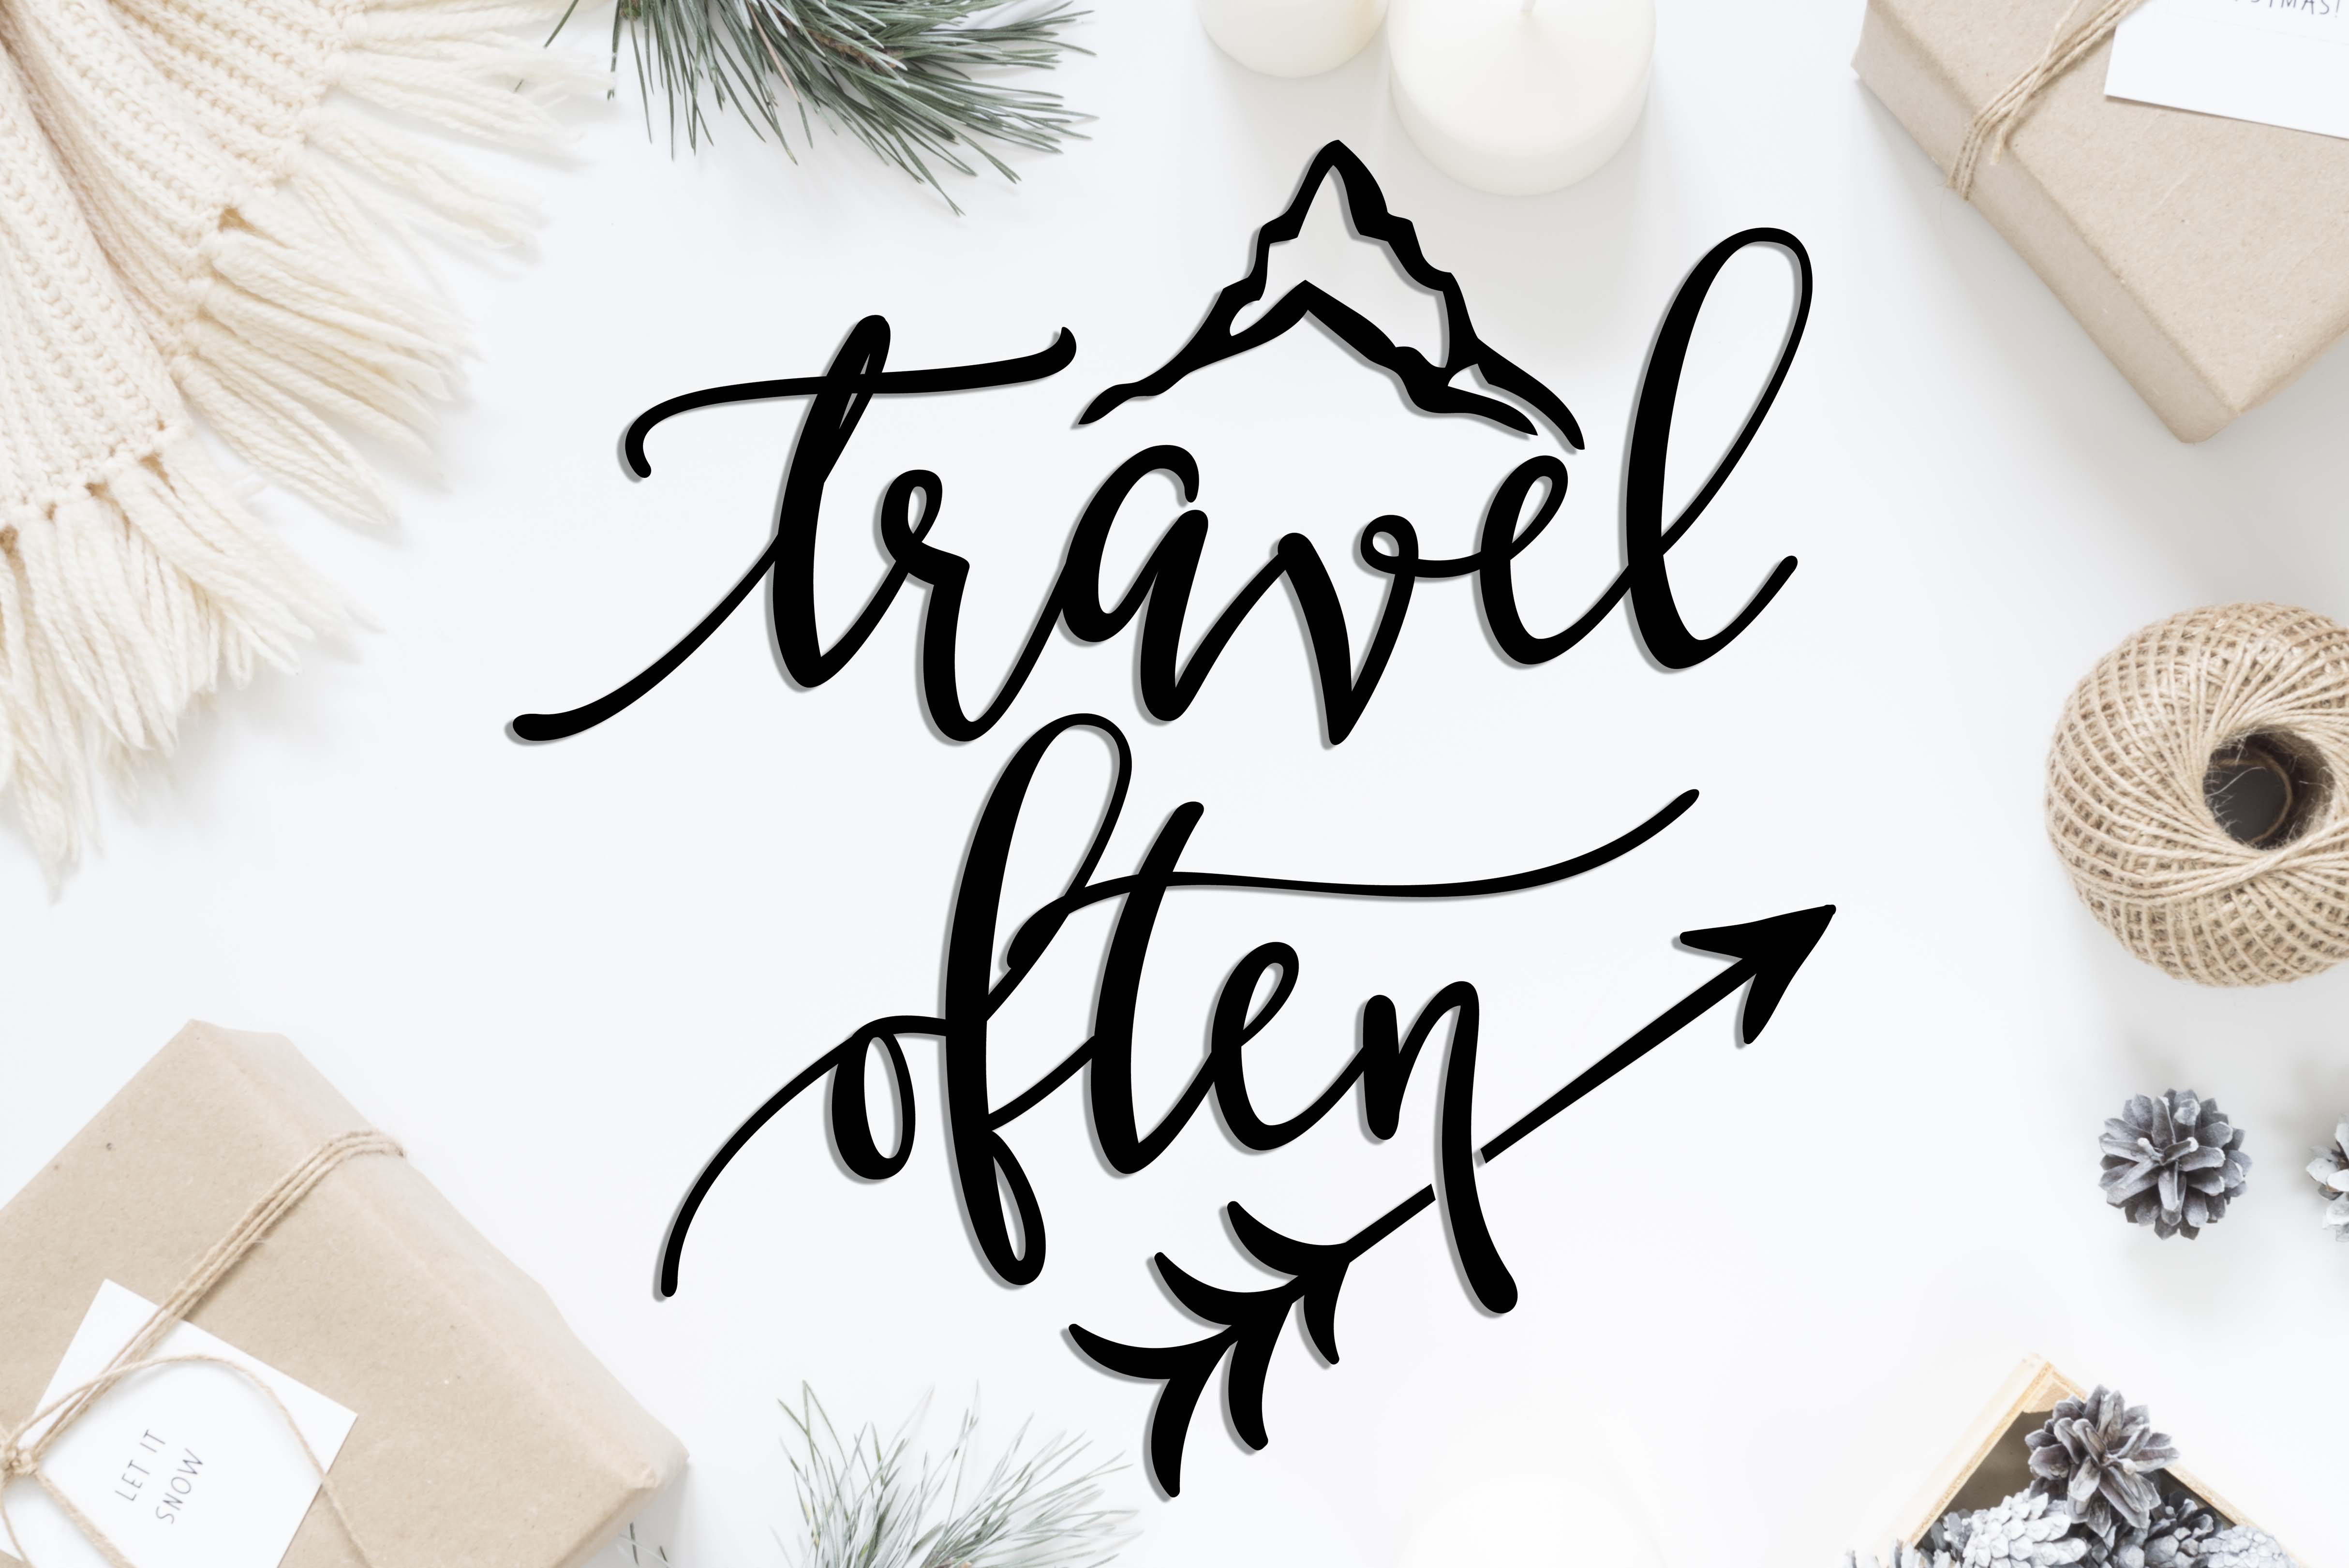 Travel often SVG DXF PNG EPS example image 2